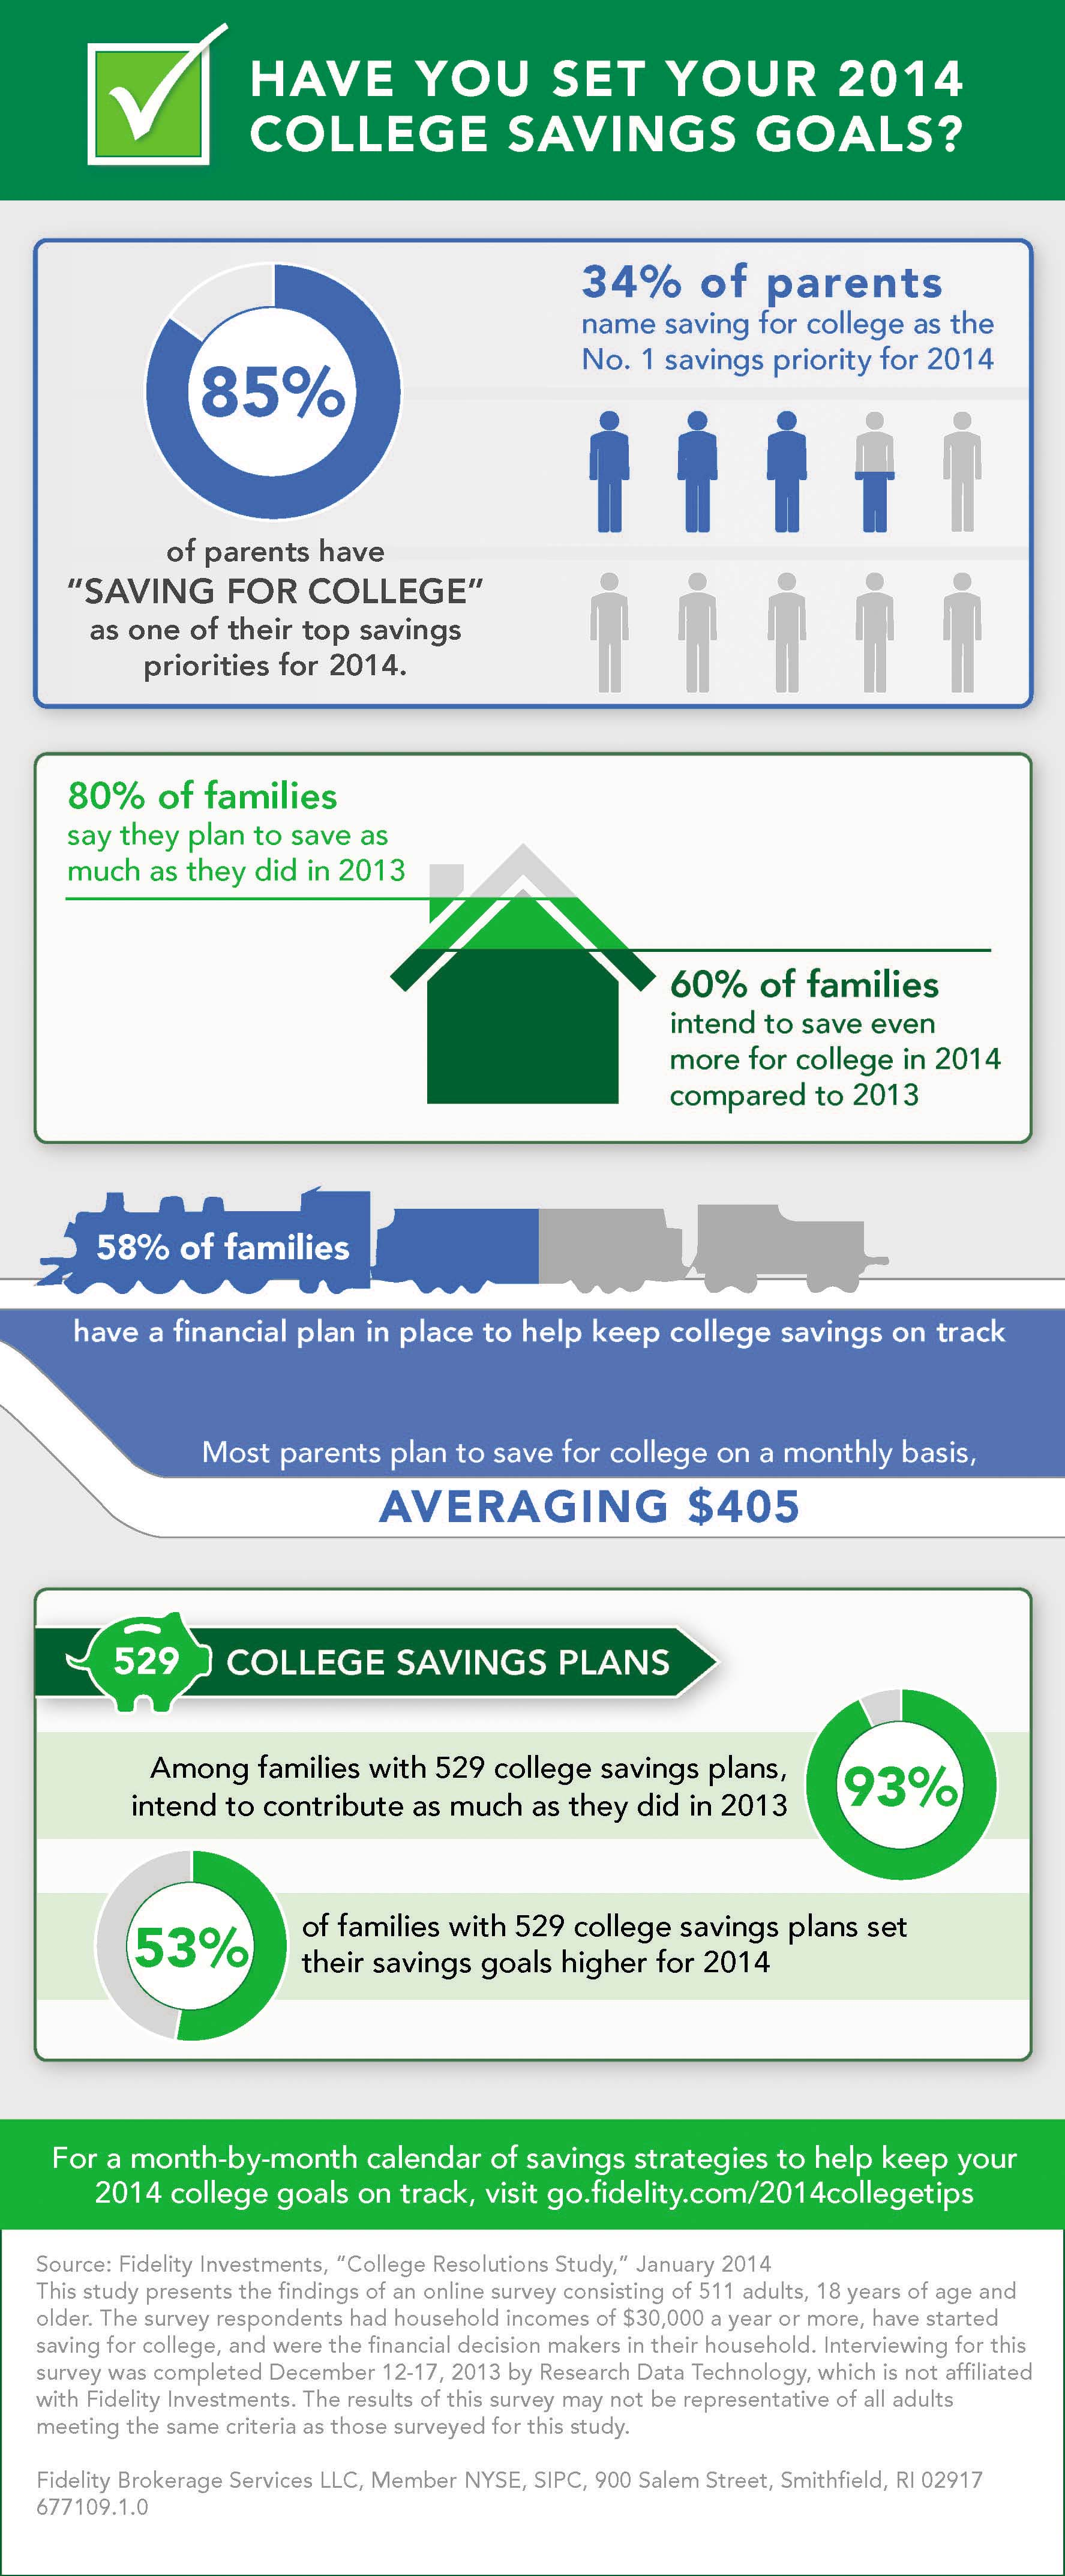 How Are You Saving For Your Child's College Education?